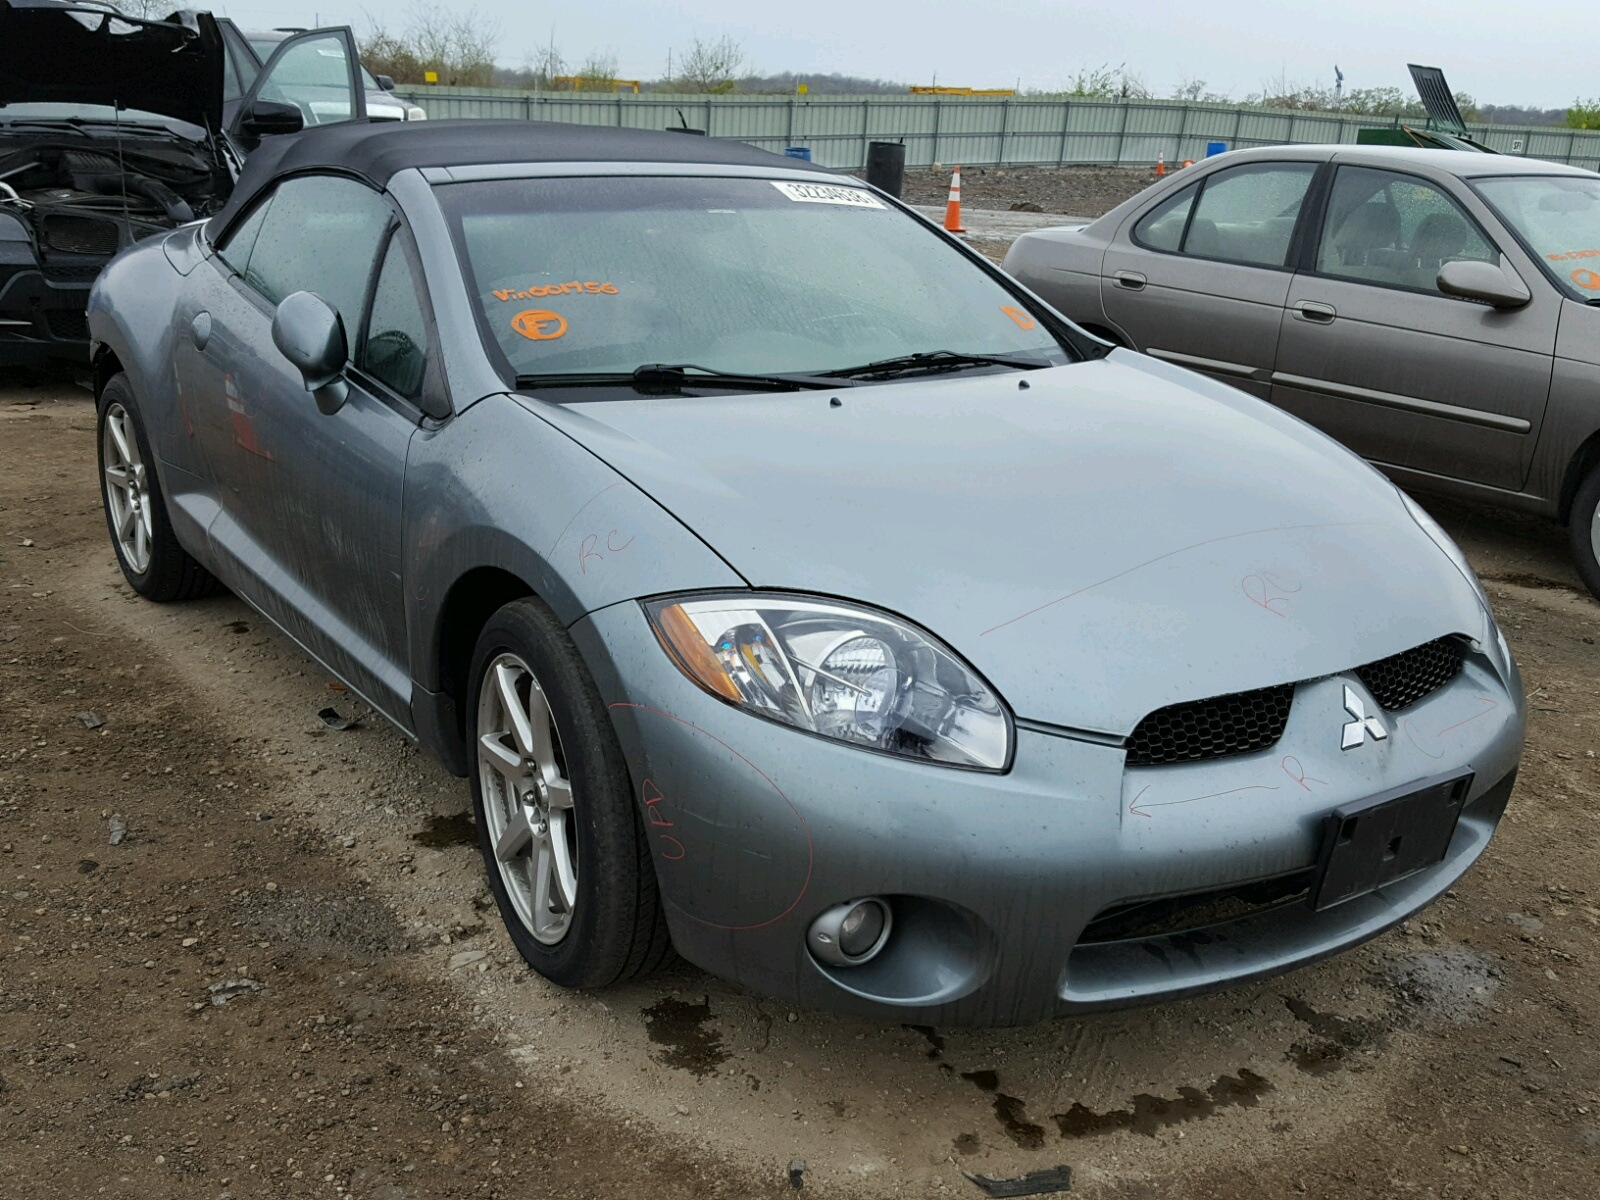 longueuil and mitsubishi choix located sale in is qc a the eclipse price vehicle at this sold being for orange of by displays autos en